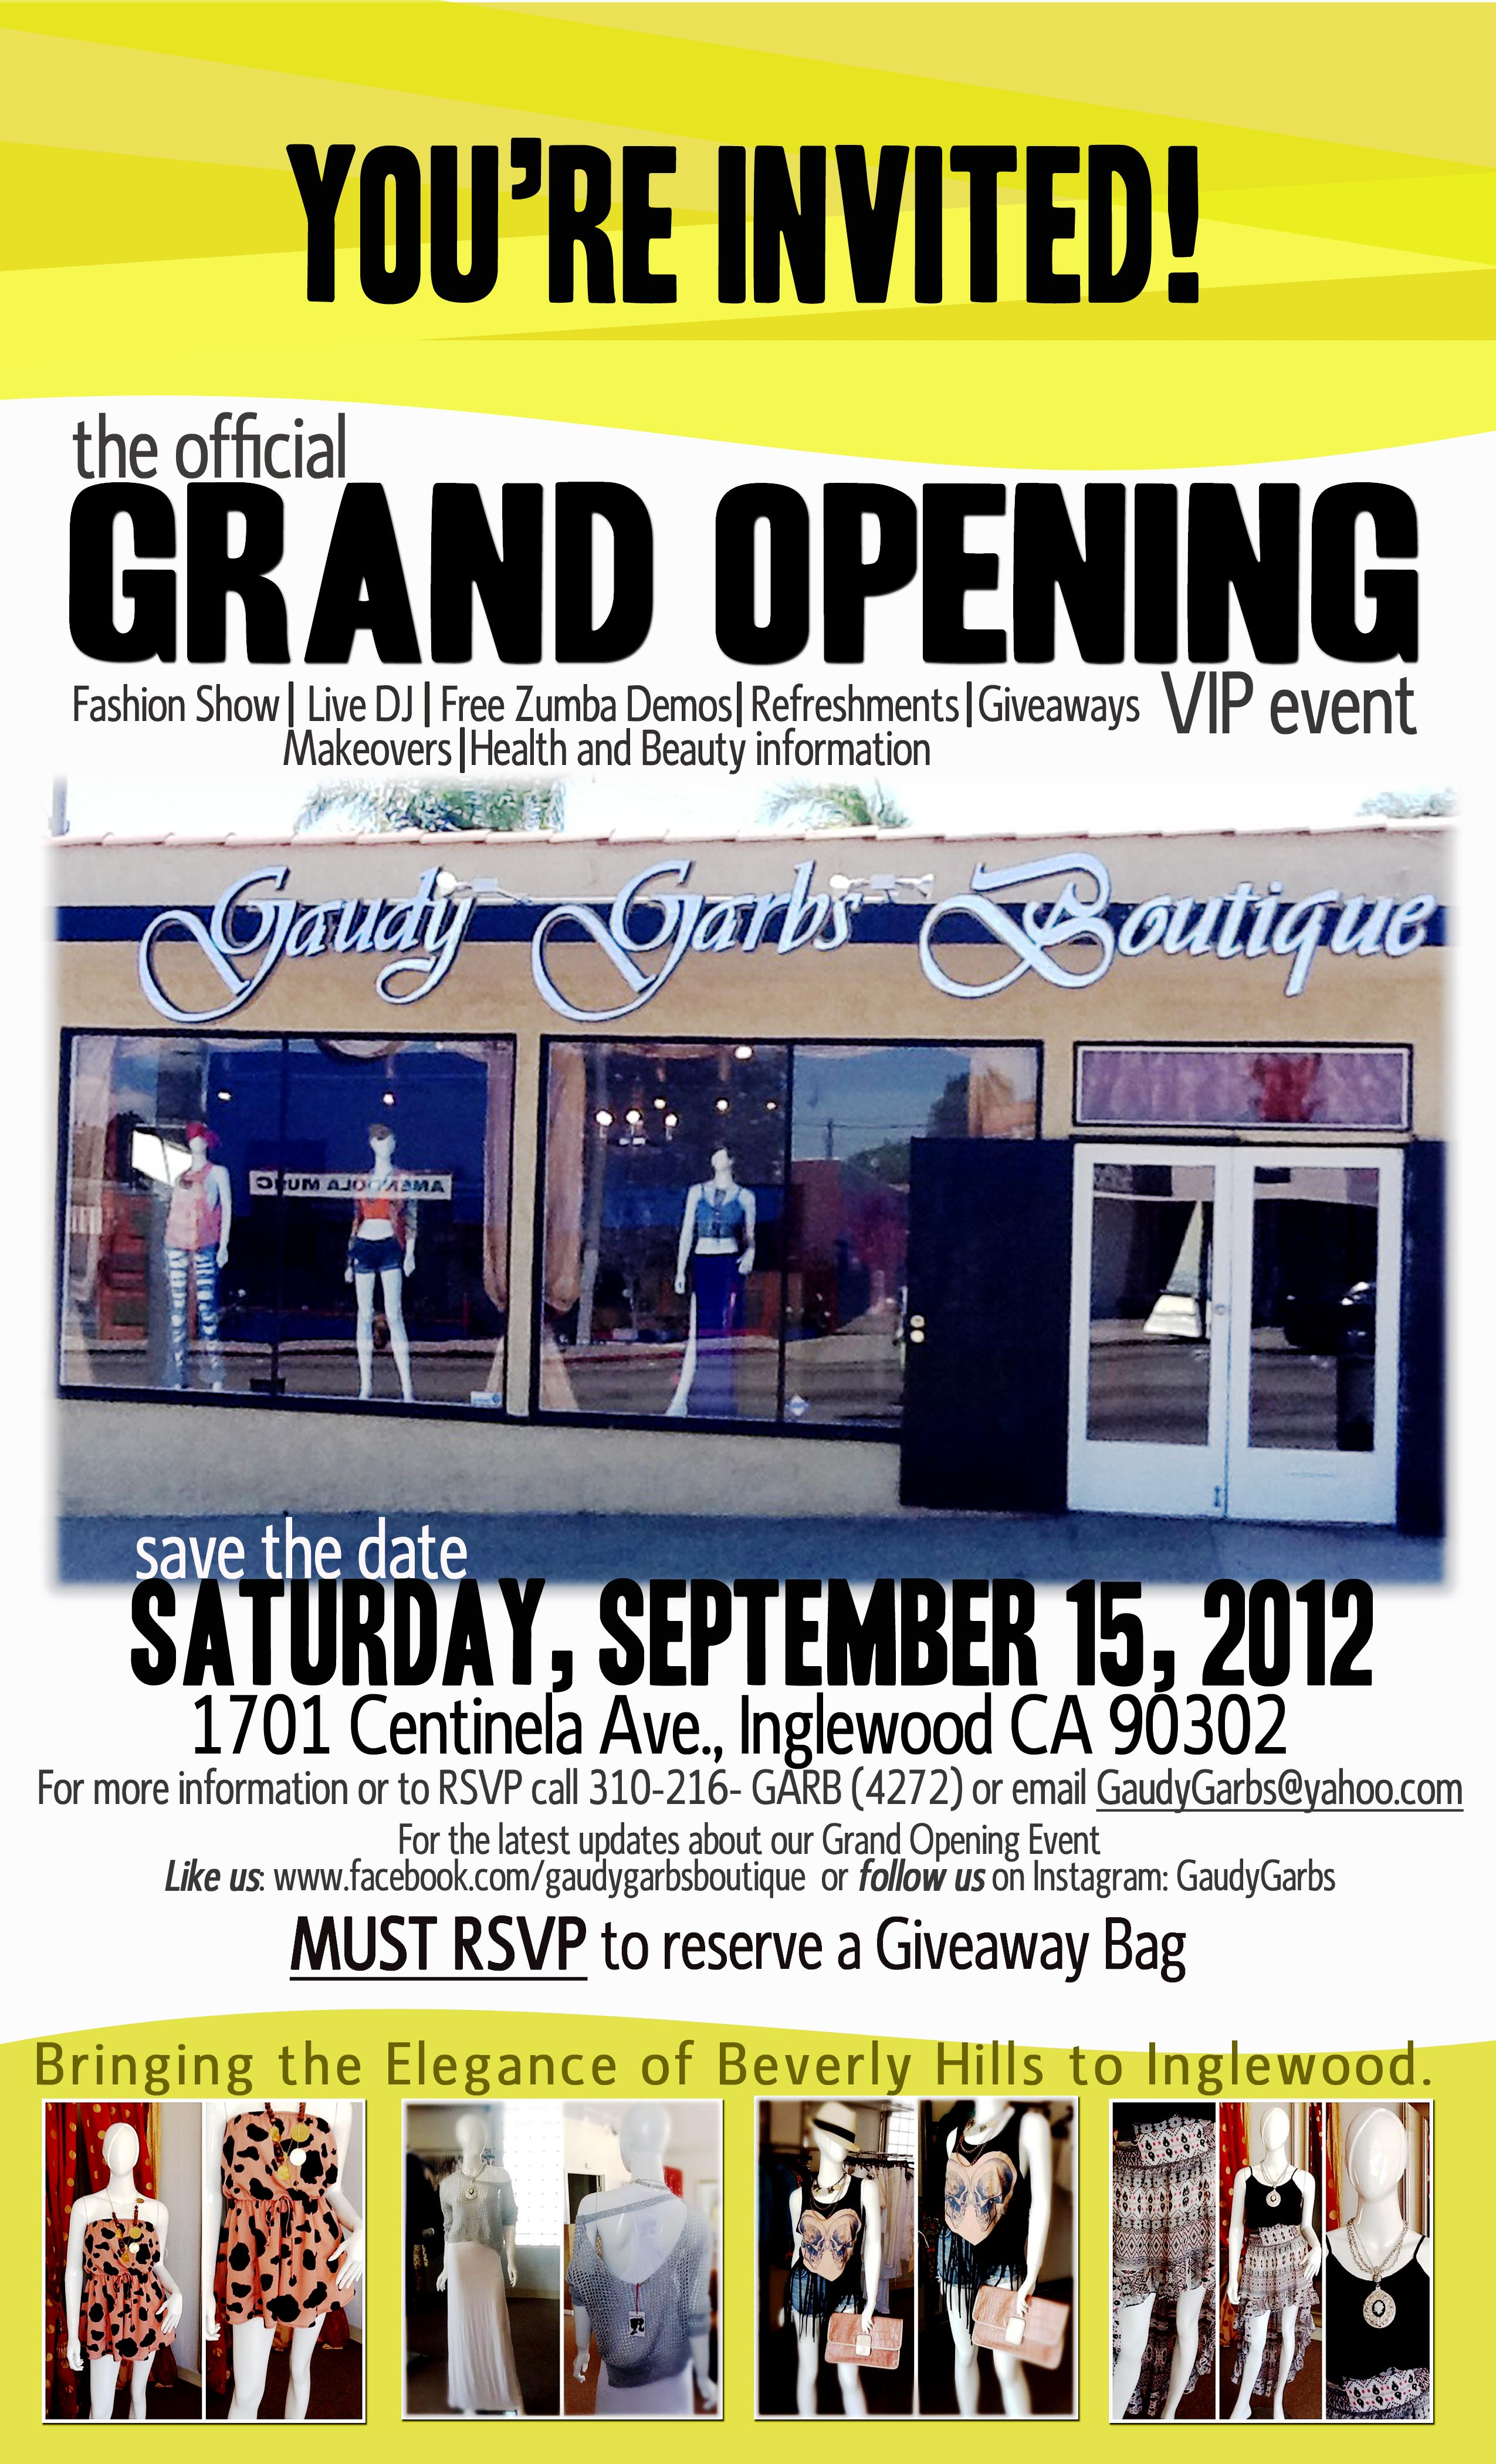 Official Invitation to the Gaudy Garbs Grand Re-Opening designed by Events in the City